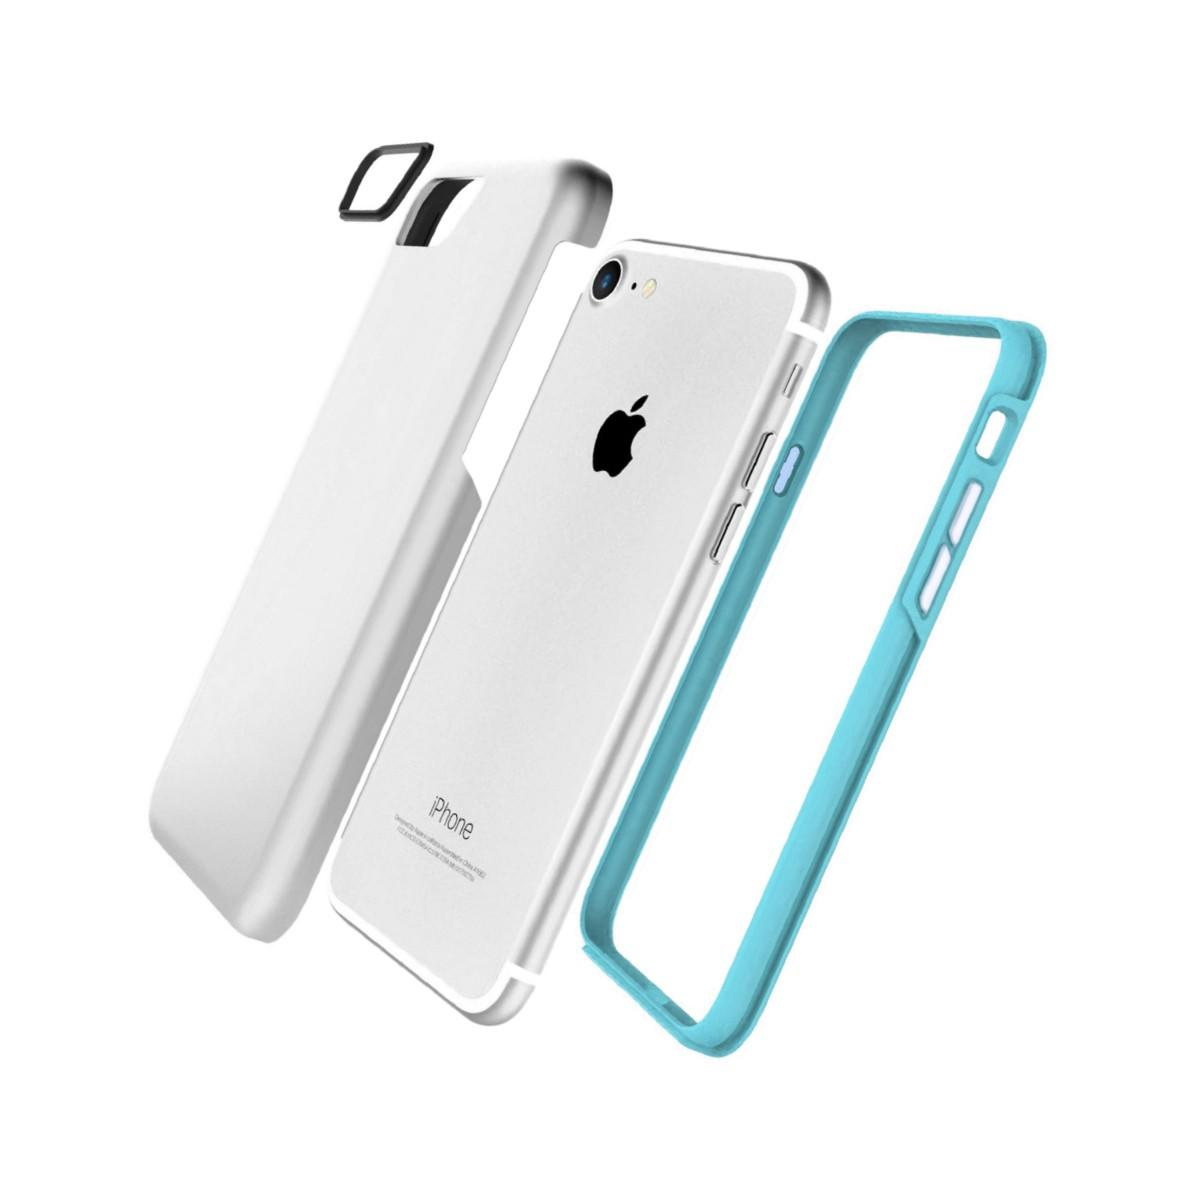 Jivo Combo Tough Case for iPhone 7 Silver